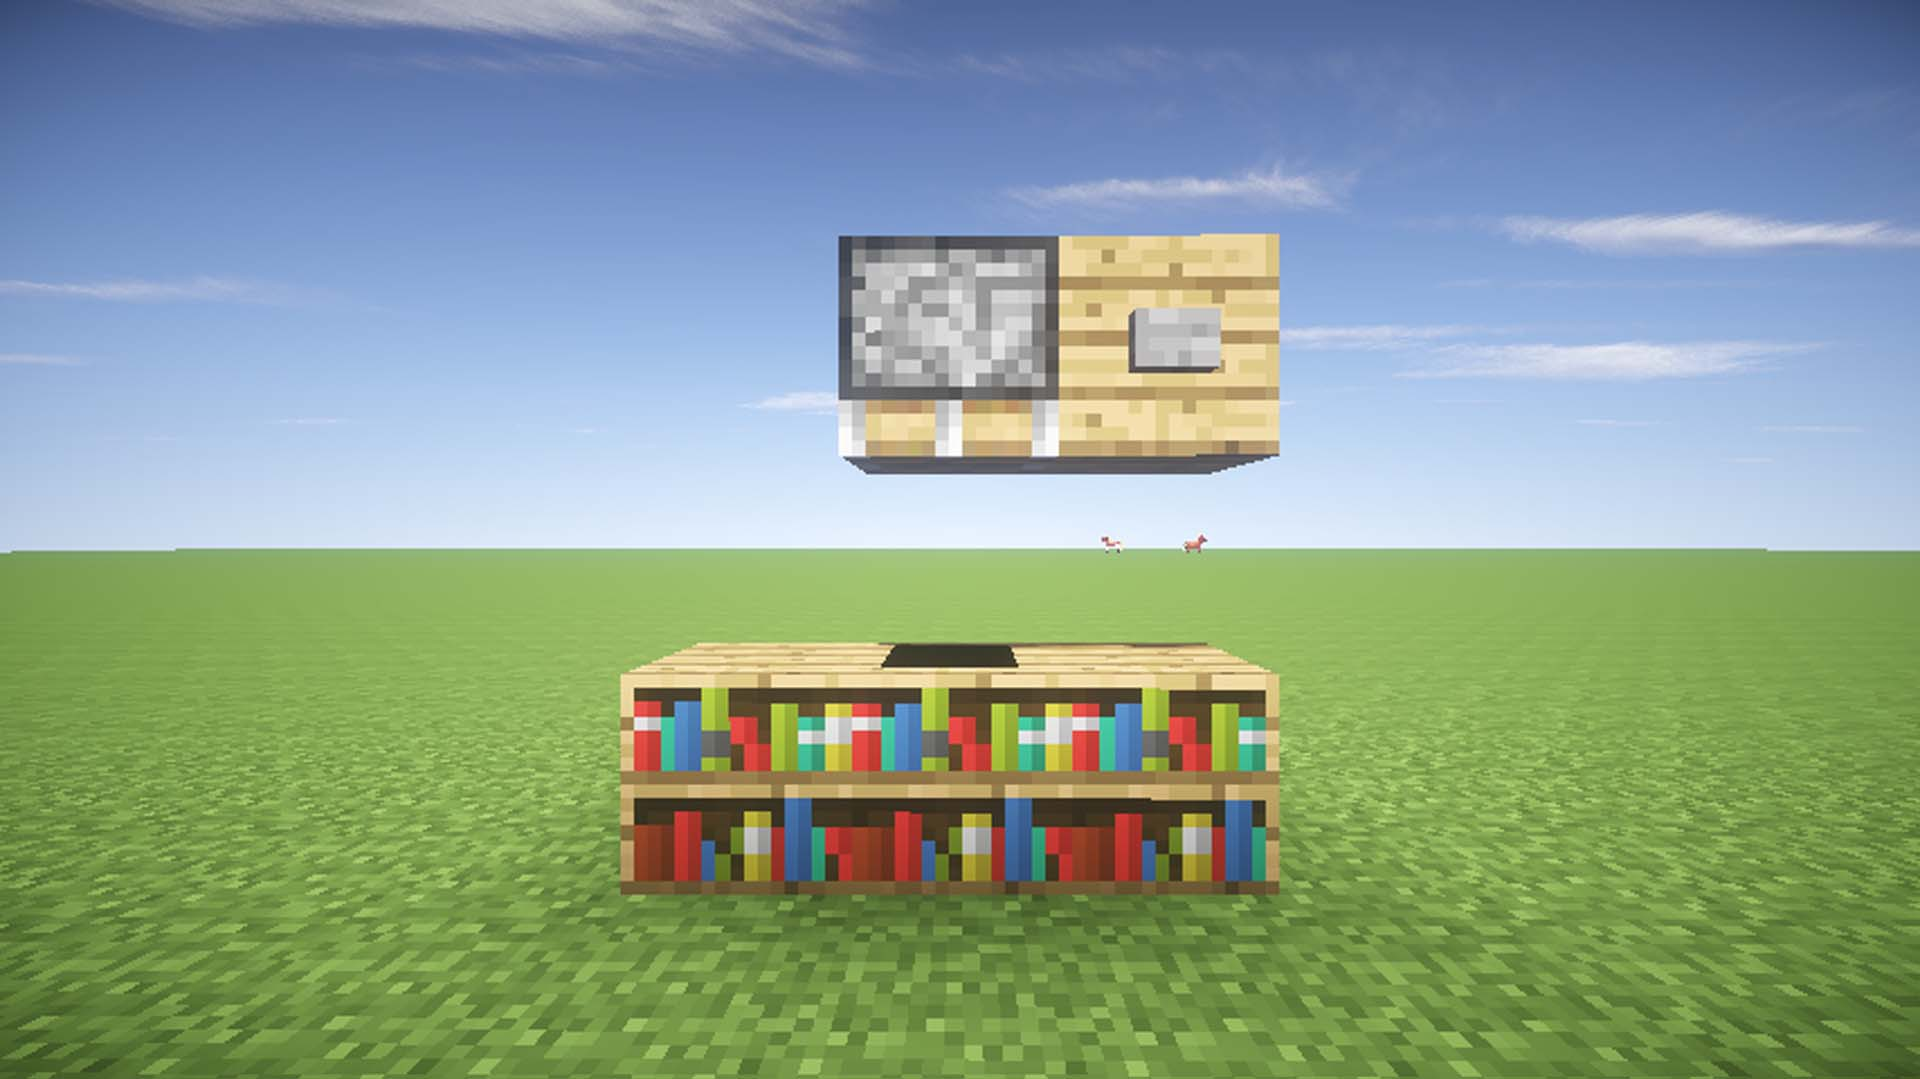 Superb img of Minecraft Hidden Chests How To Hide a Chest in Minecraft BC GB with #9F802C color and 1920x1079 pixels